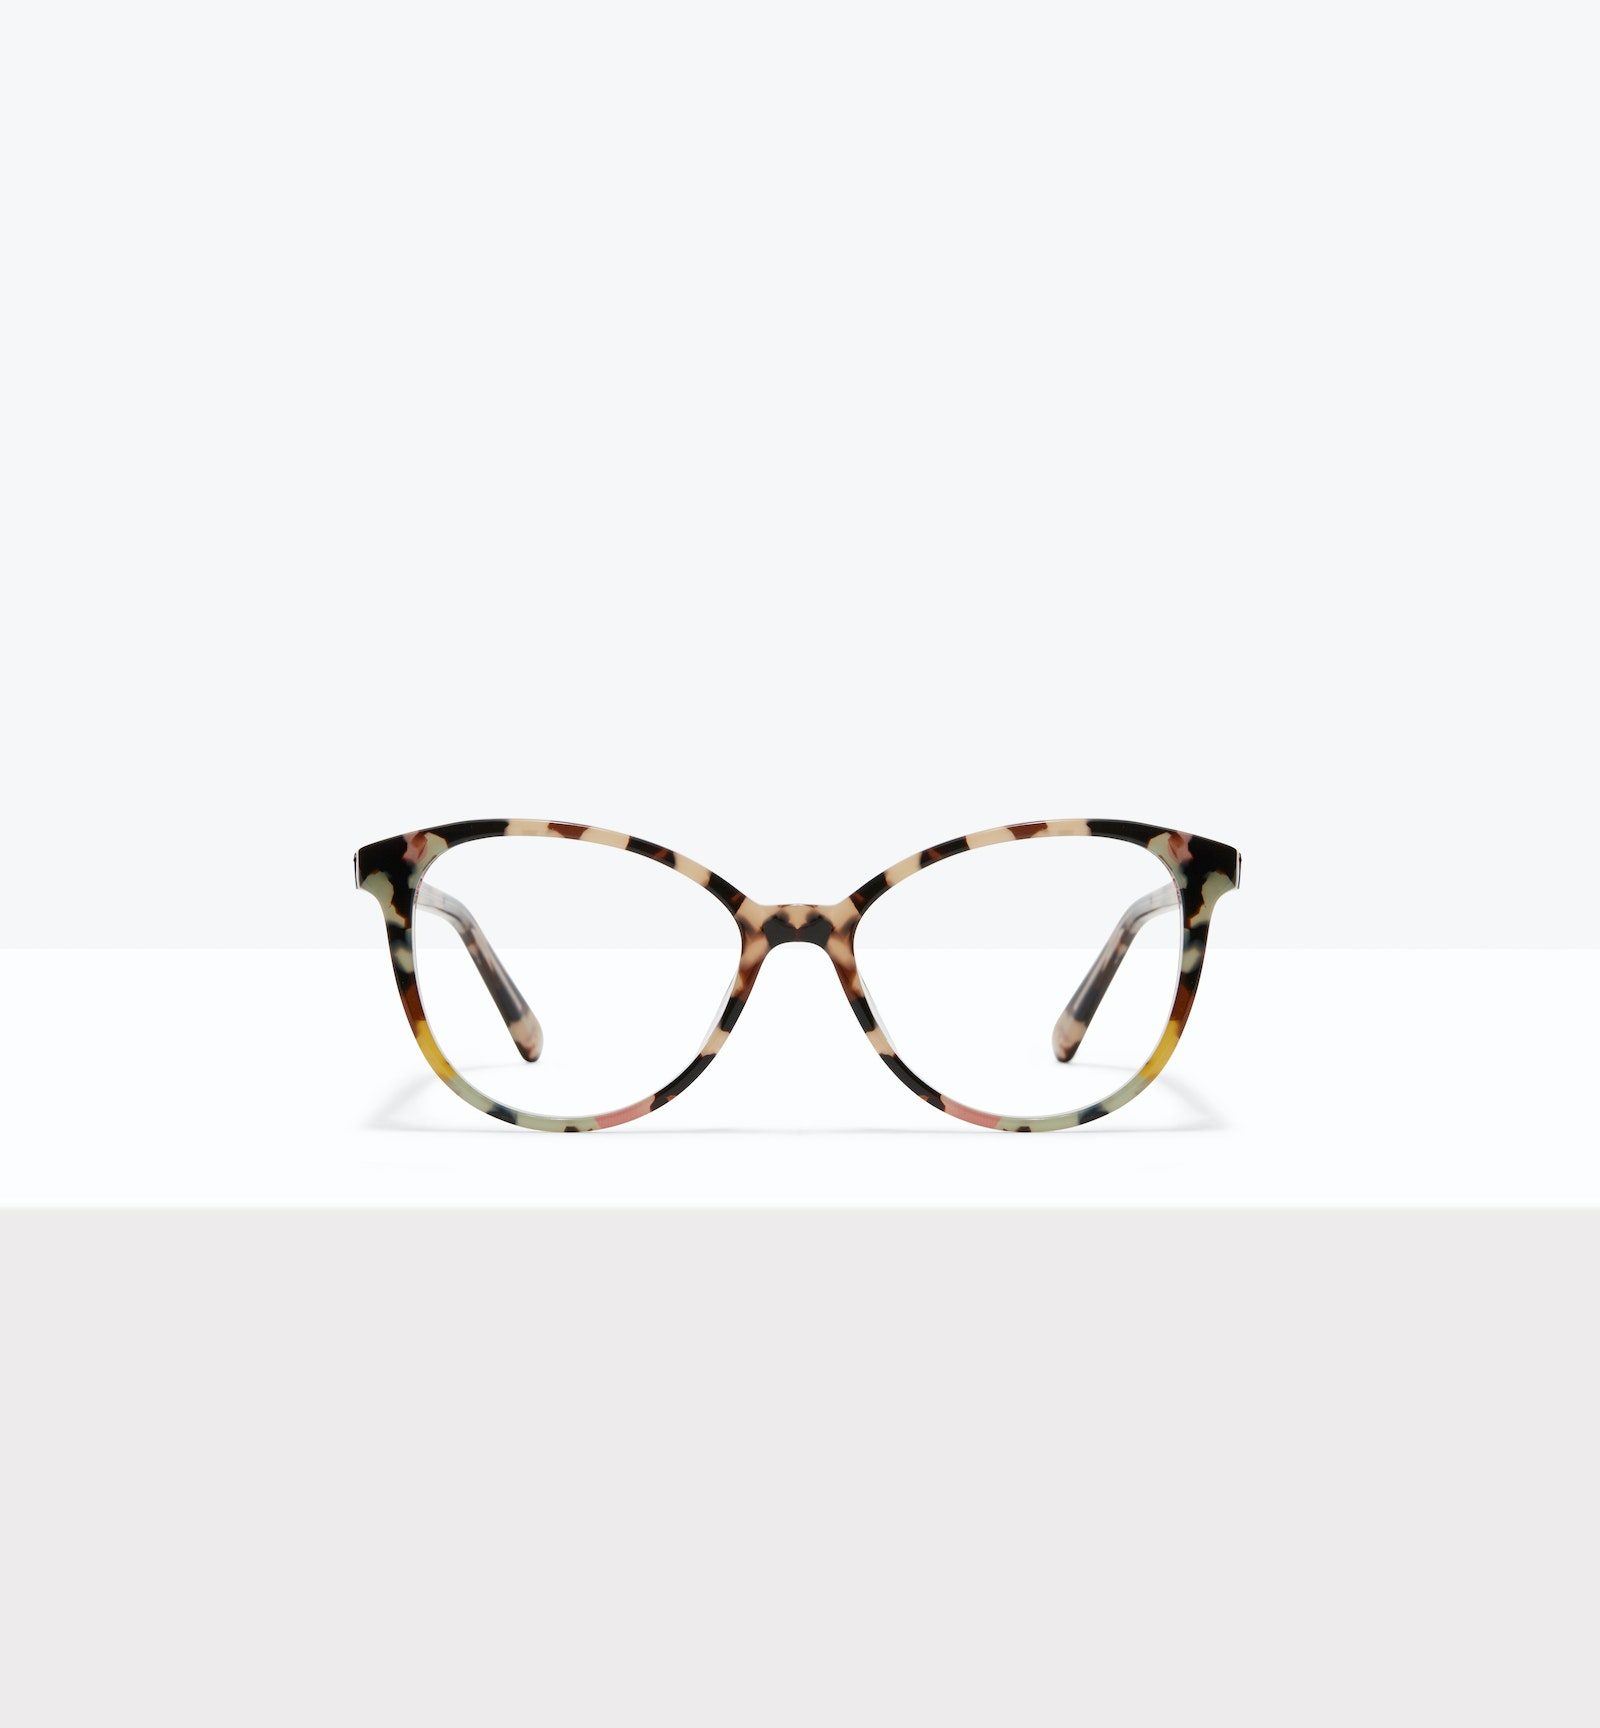 Affordable Fashion Glasses Cat Eye Eyeglasses Women Esprit M Pastel Tort